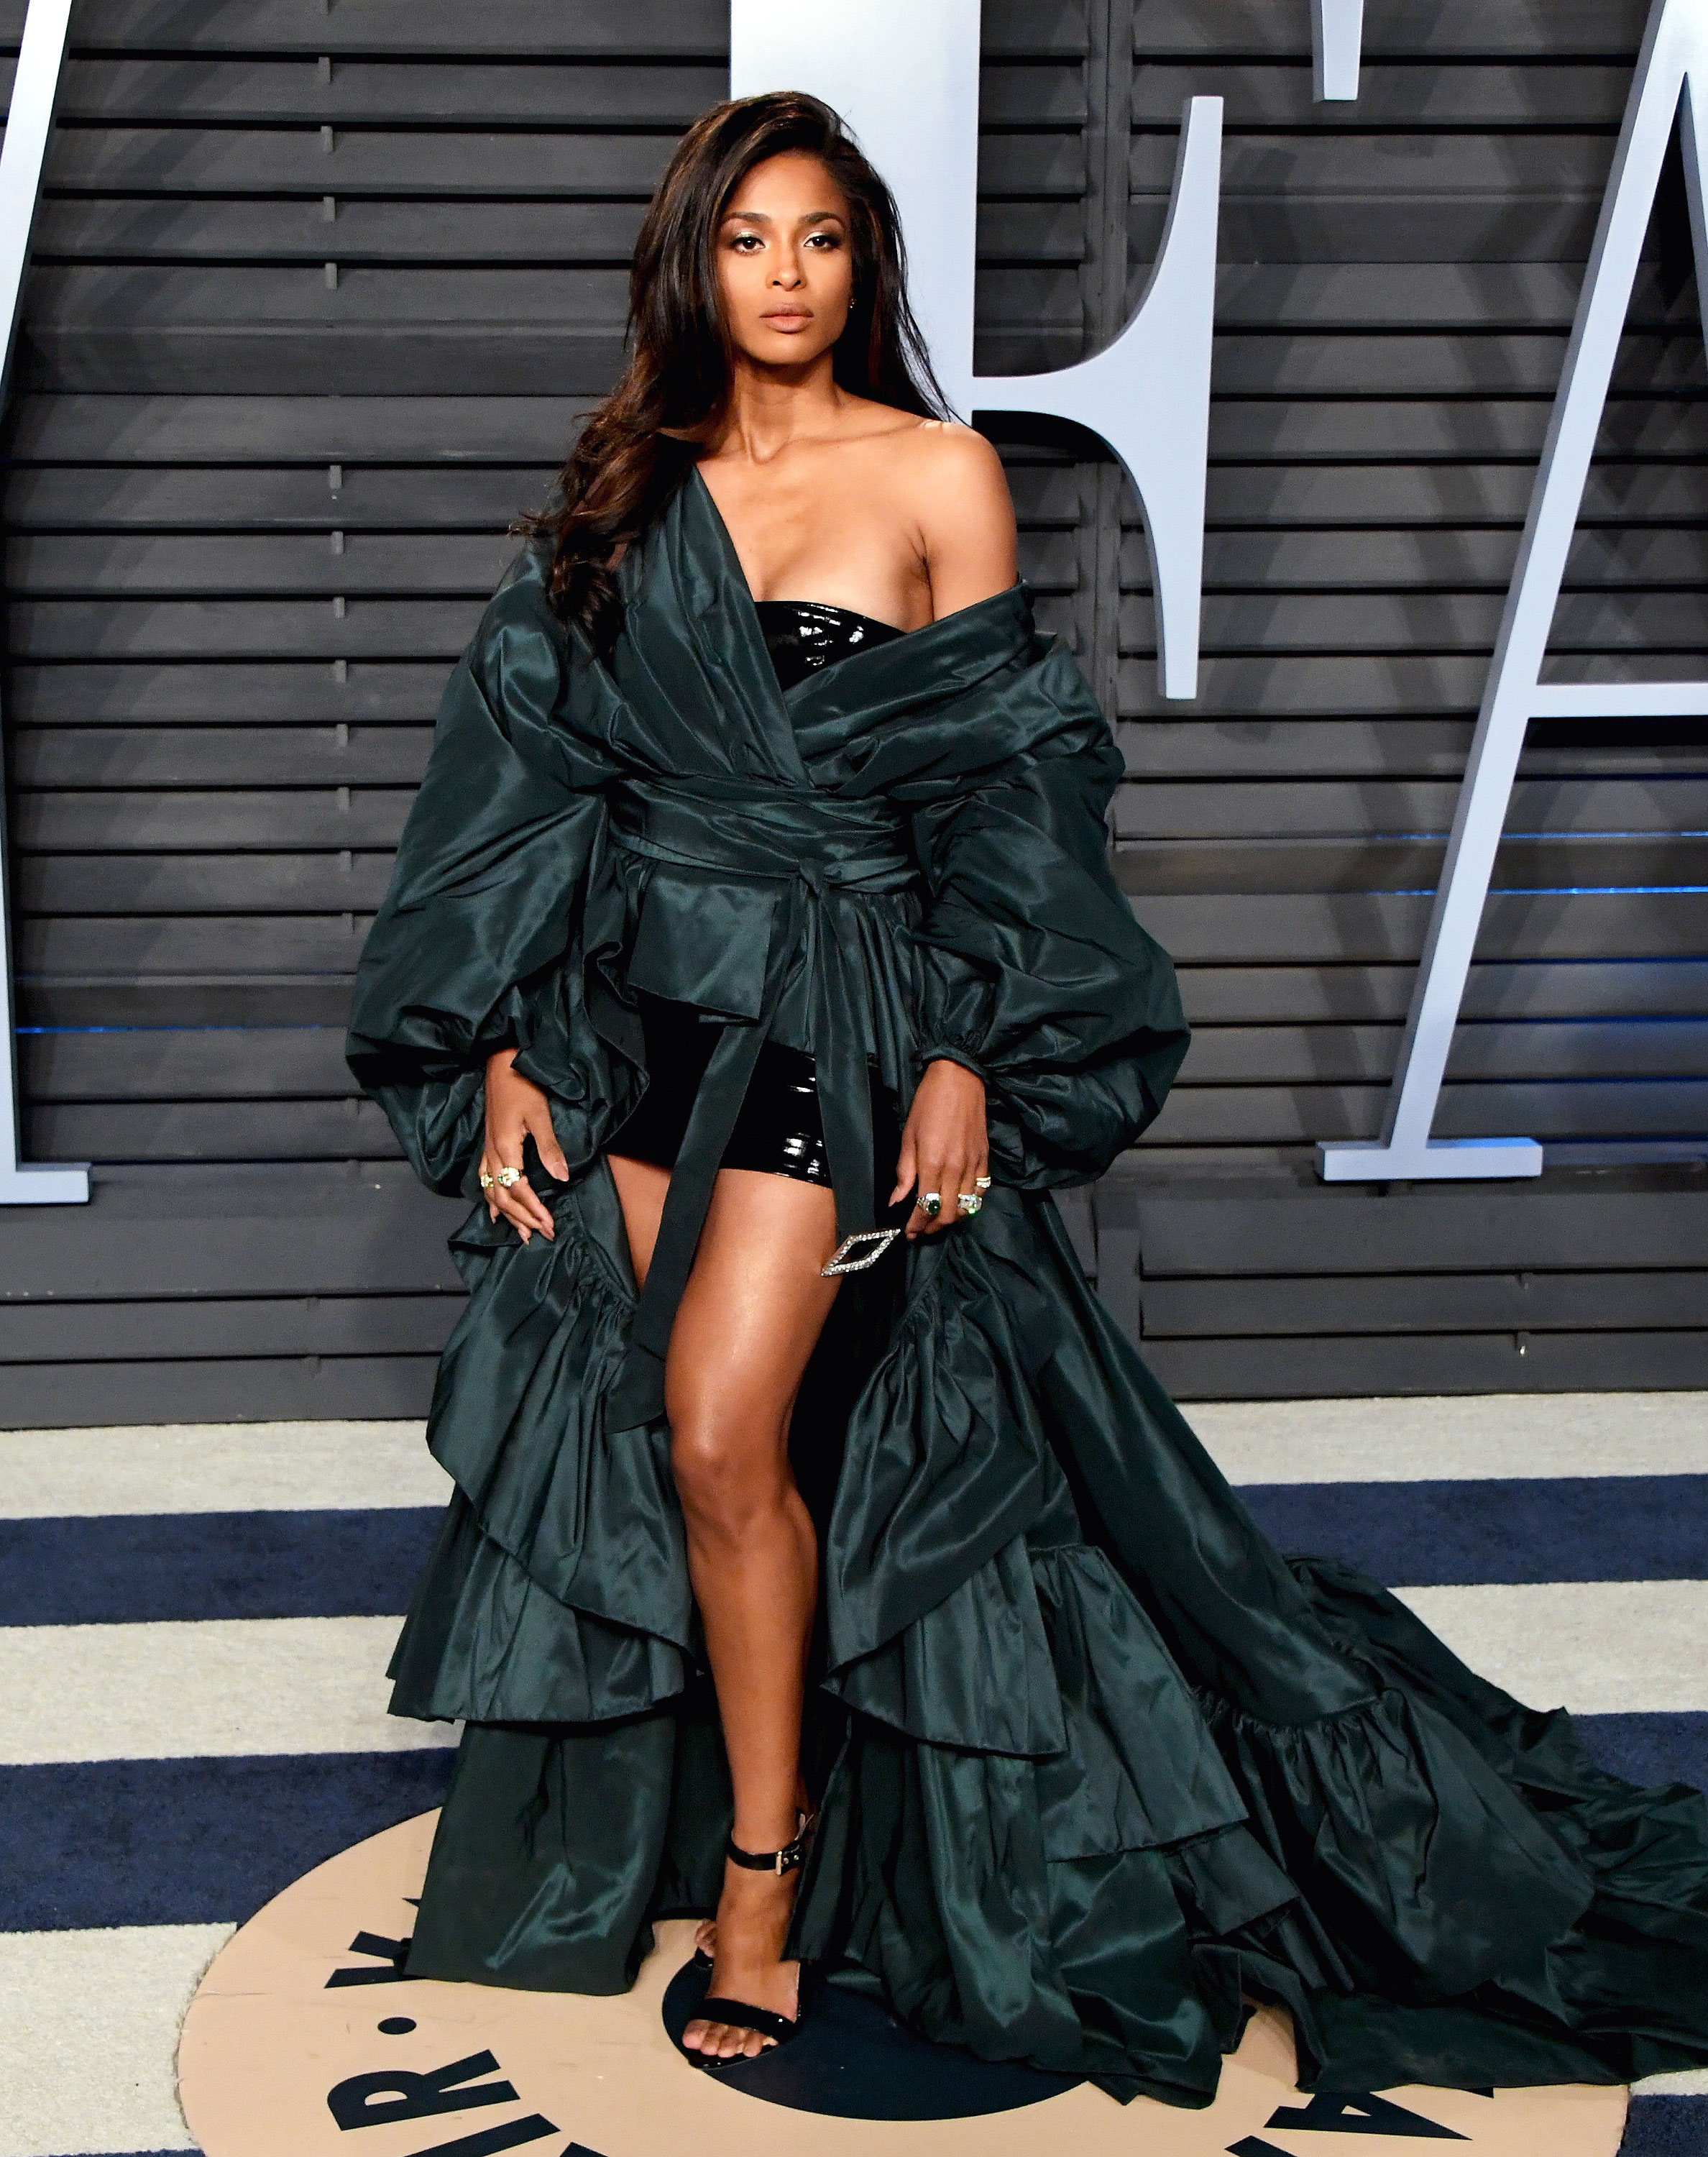 ciara - In a voluminous Alexandre Vauthier creation and Brian Atwood sandals at the Vanity Fair Oscar Party.